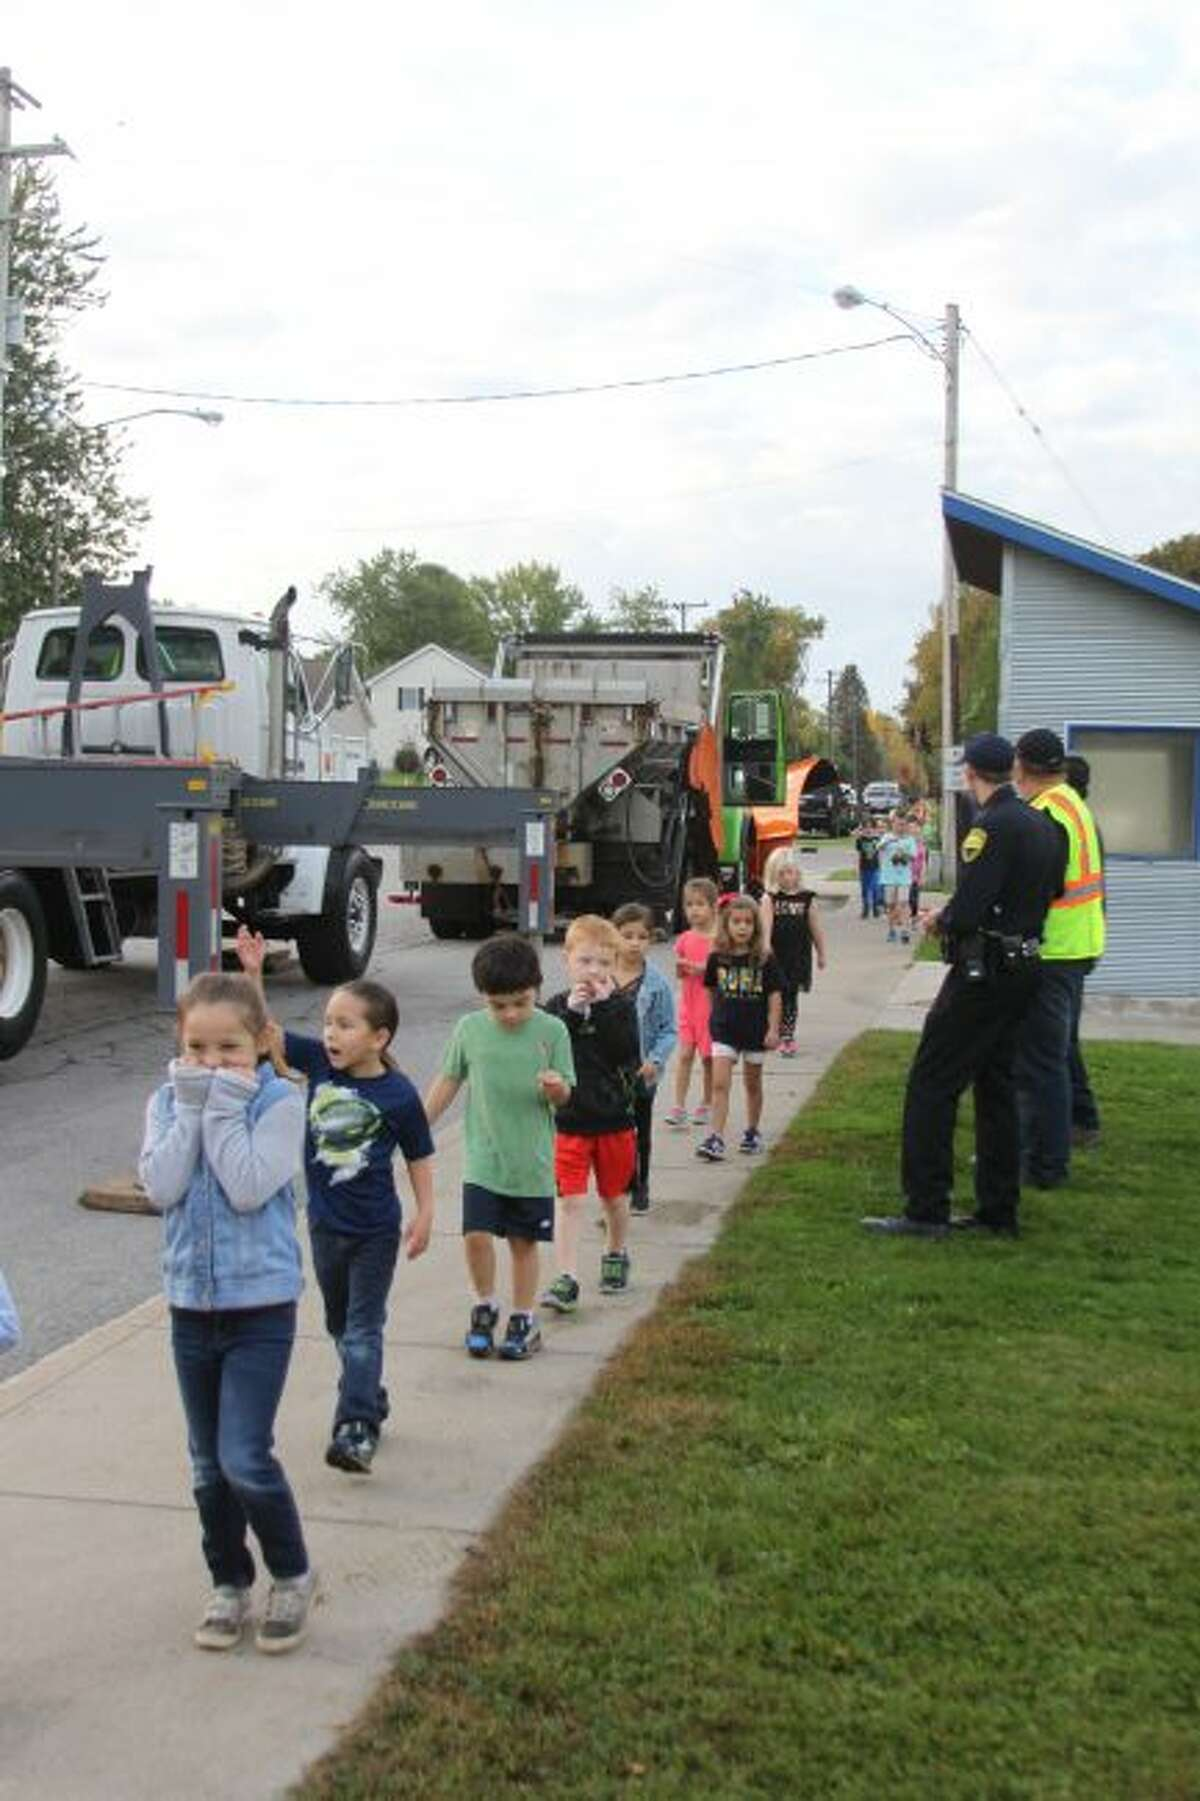 Jefferson Elementary School students held a Walkathon to raise money for field trips, playground items and things for the classrooms. Students were awarded foot charms for every lap they walked that they could attach to a chain and put on their backpack.